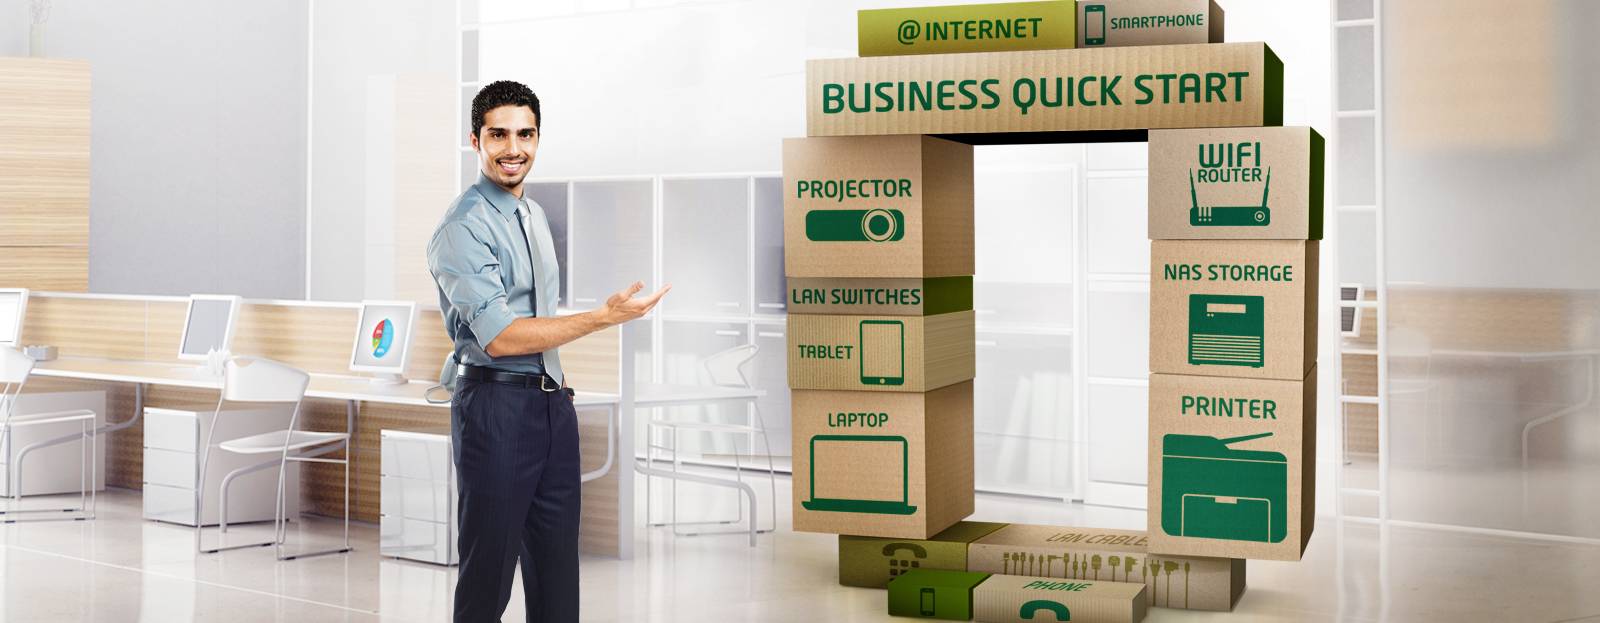 Etisalat Business Quick Start Services